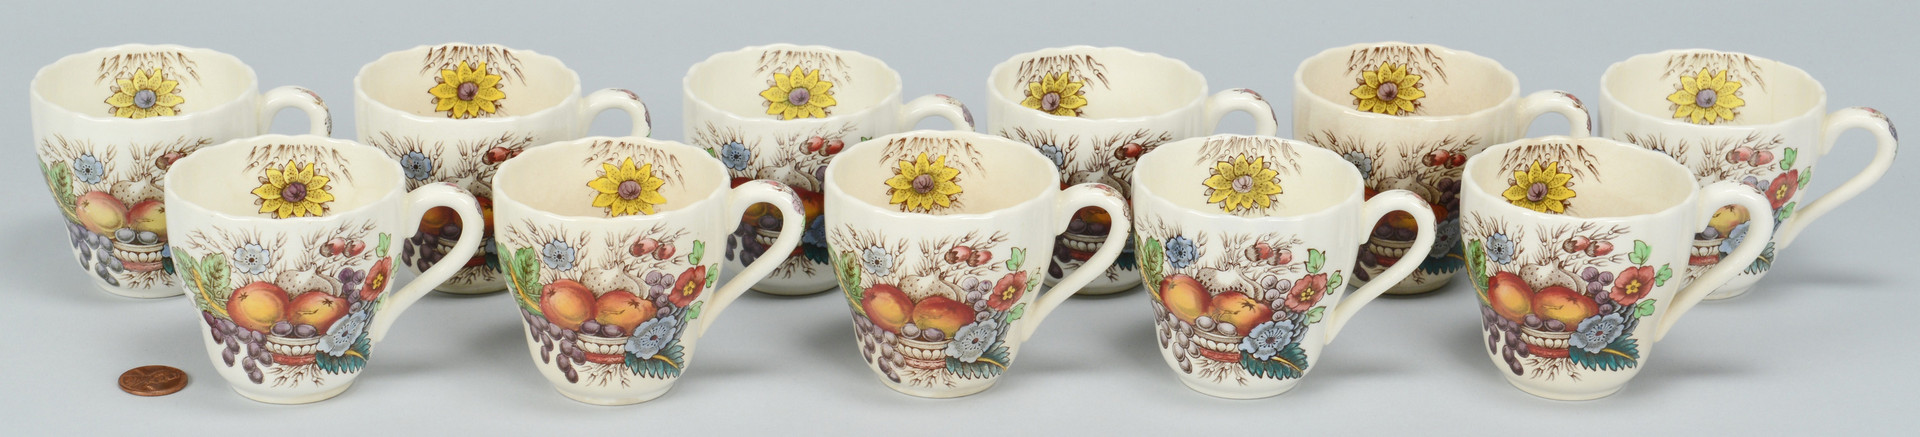 Lot 698: 265 pc. Copeland Spode Reynolds Dinnerware